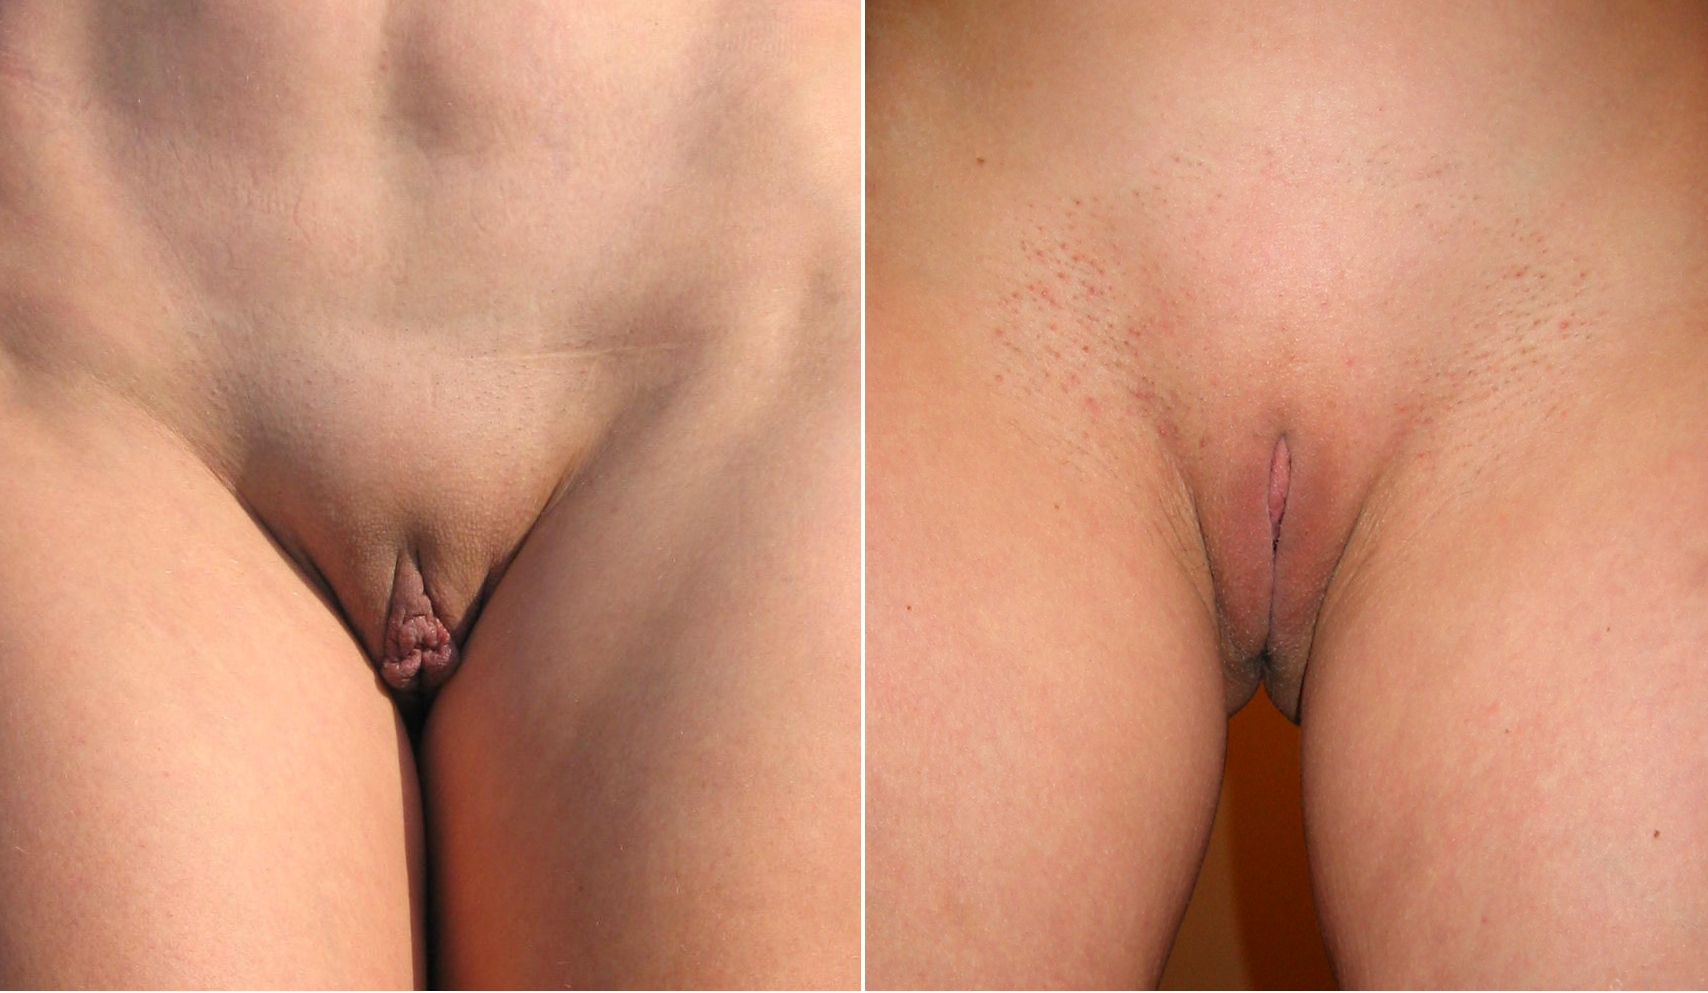 nude-sexually-aroused-clitoris-before-and-after-housewife-milf-real